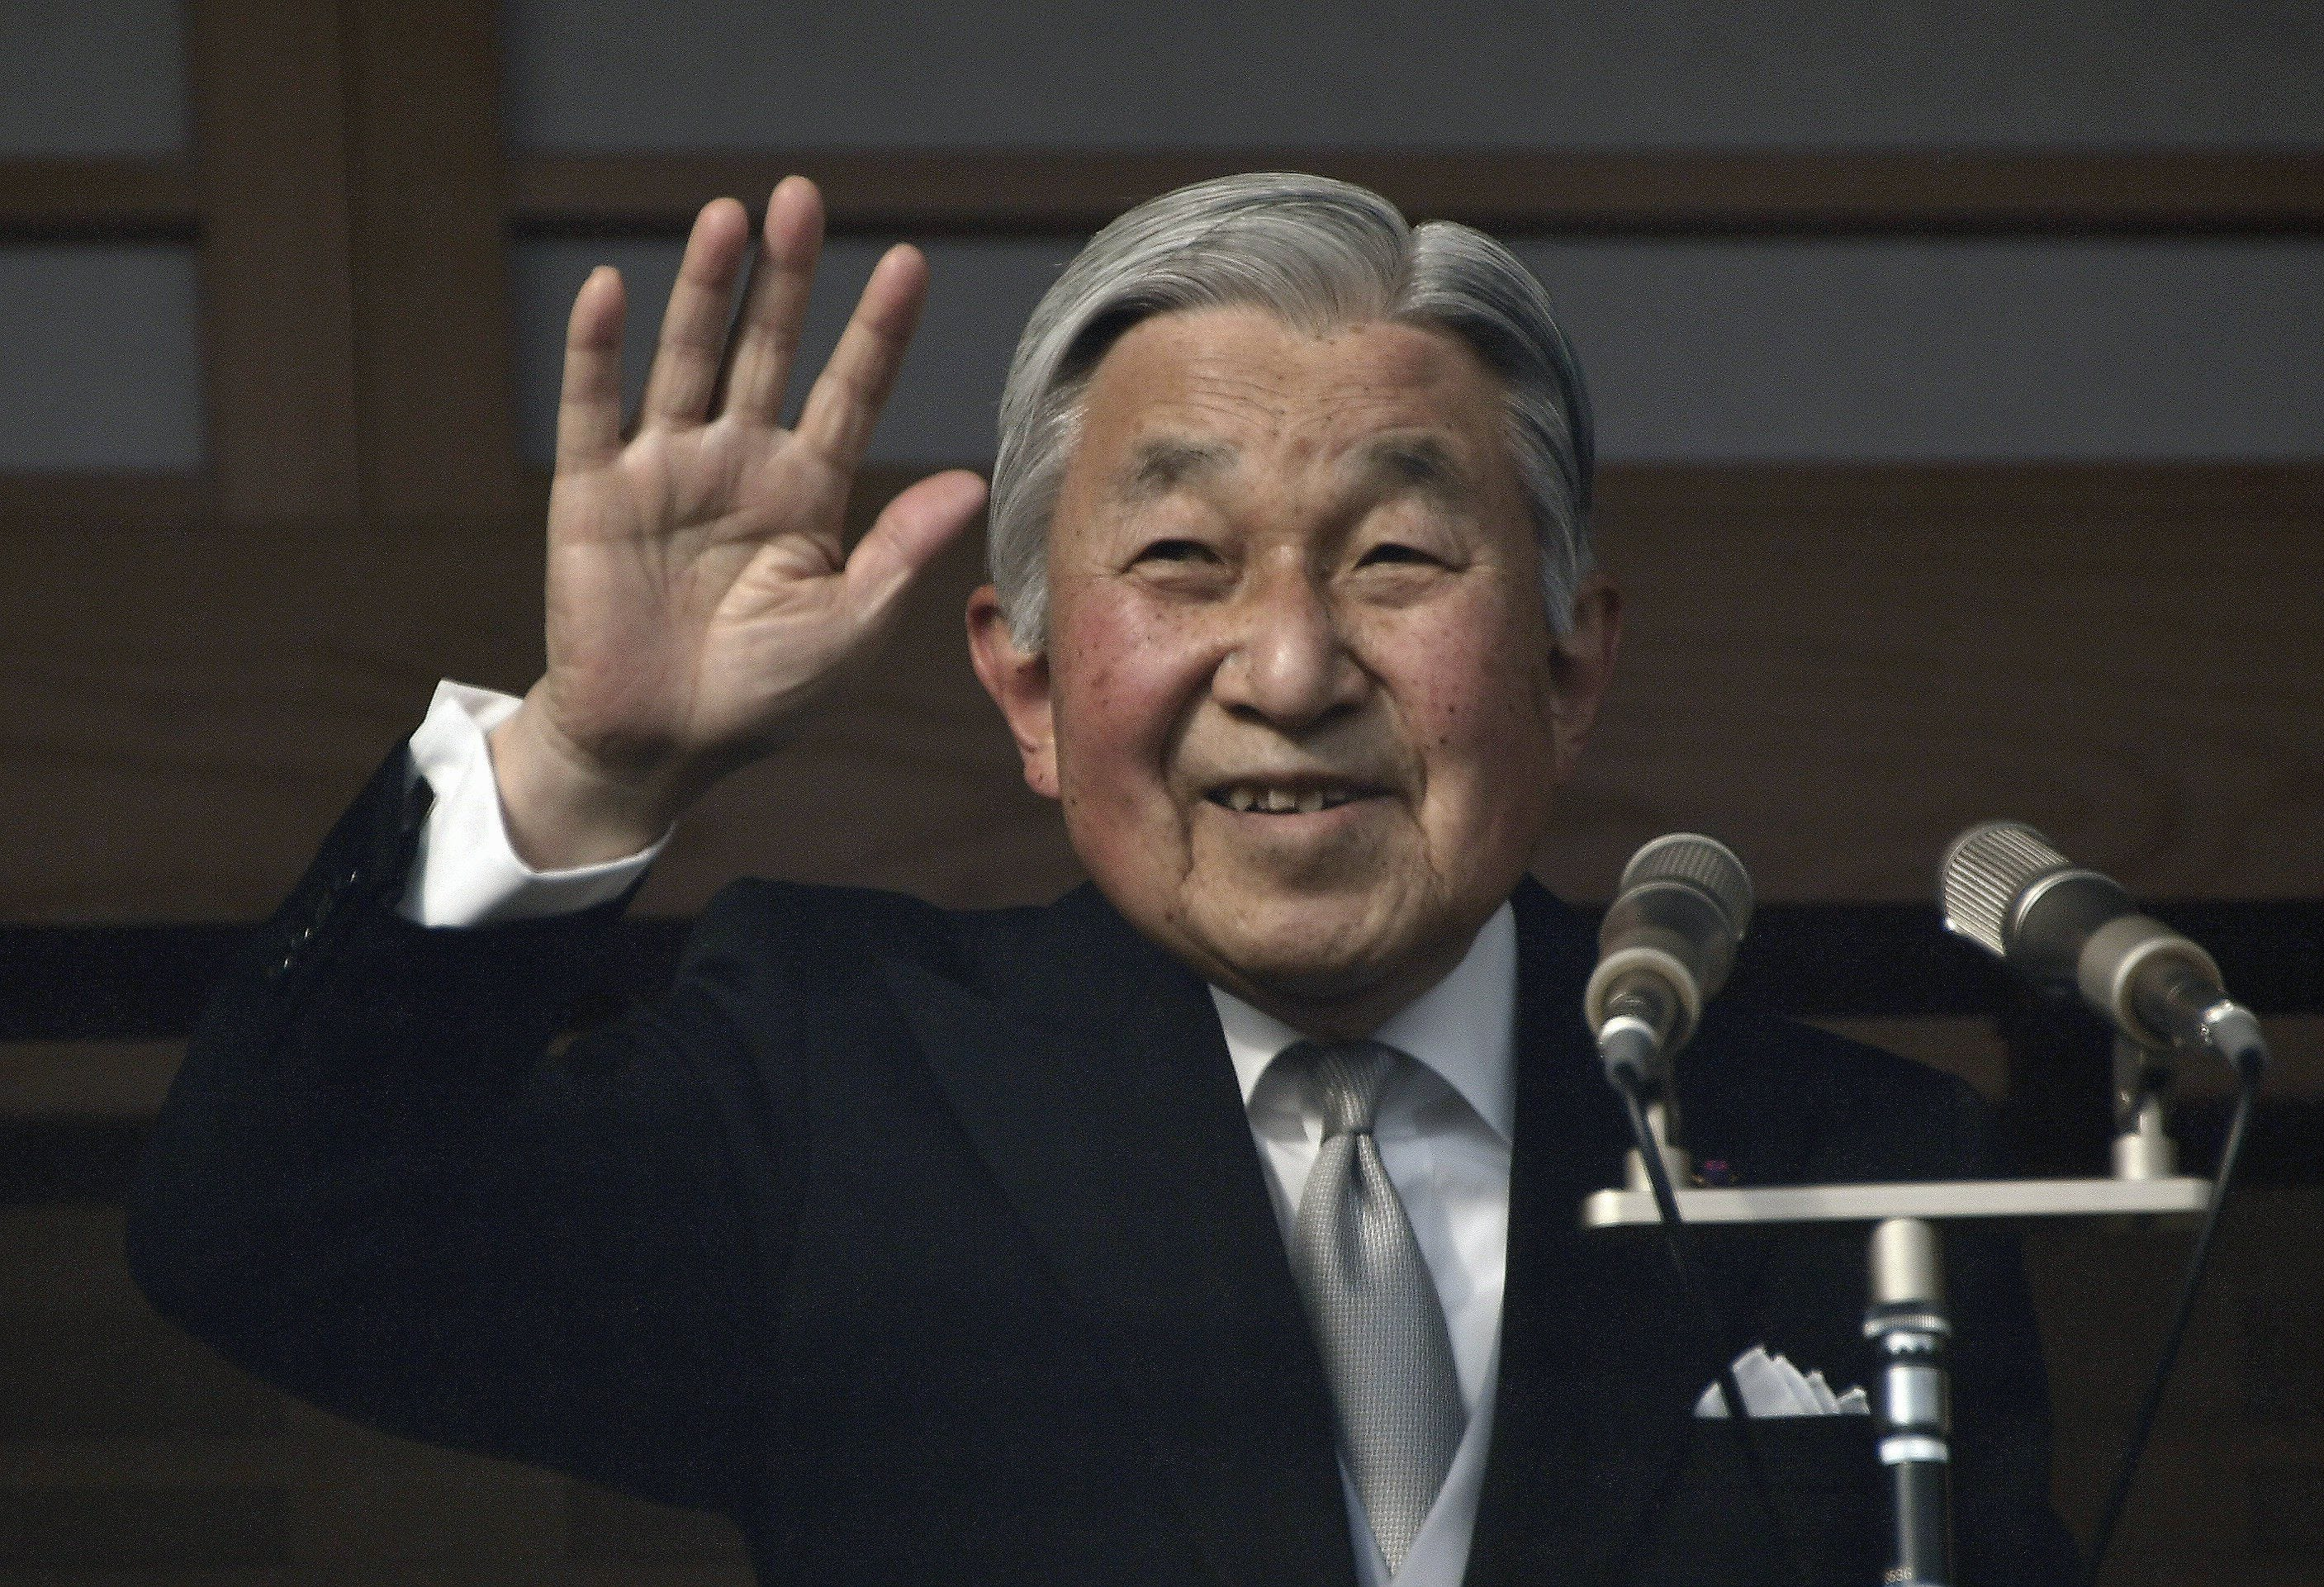 japan monarchy Japan has a constitutional monarchy, headed by an emperorthe current emperor is akihito he wields very little political power, serving primarily as the symbolic and diplomatic leader of the country.